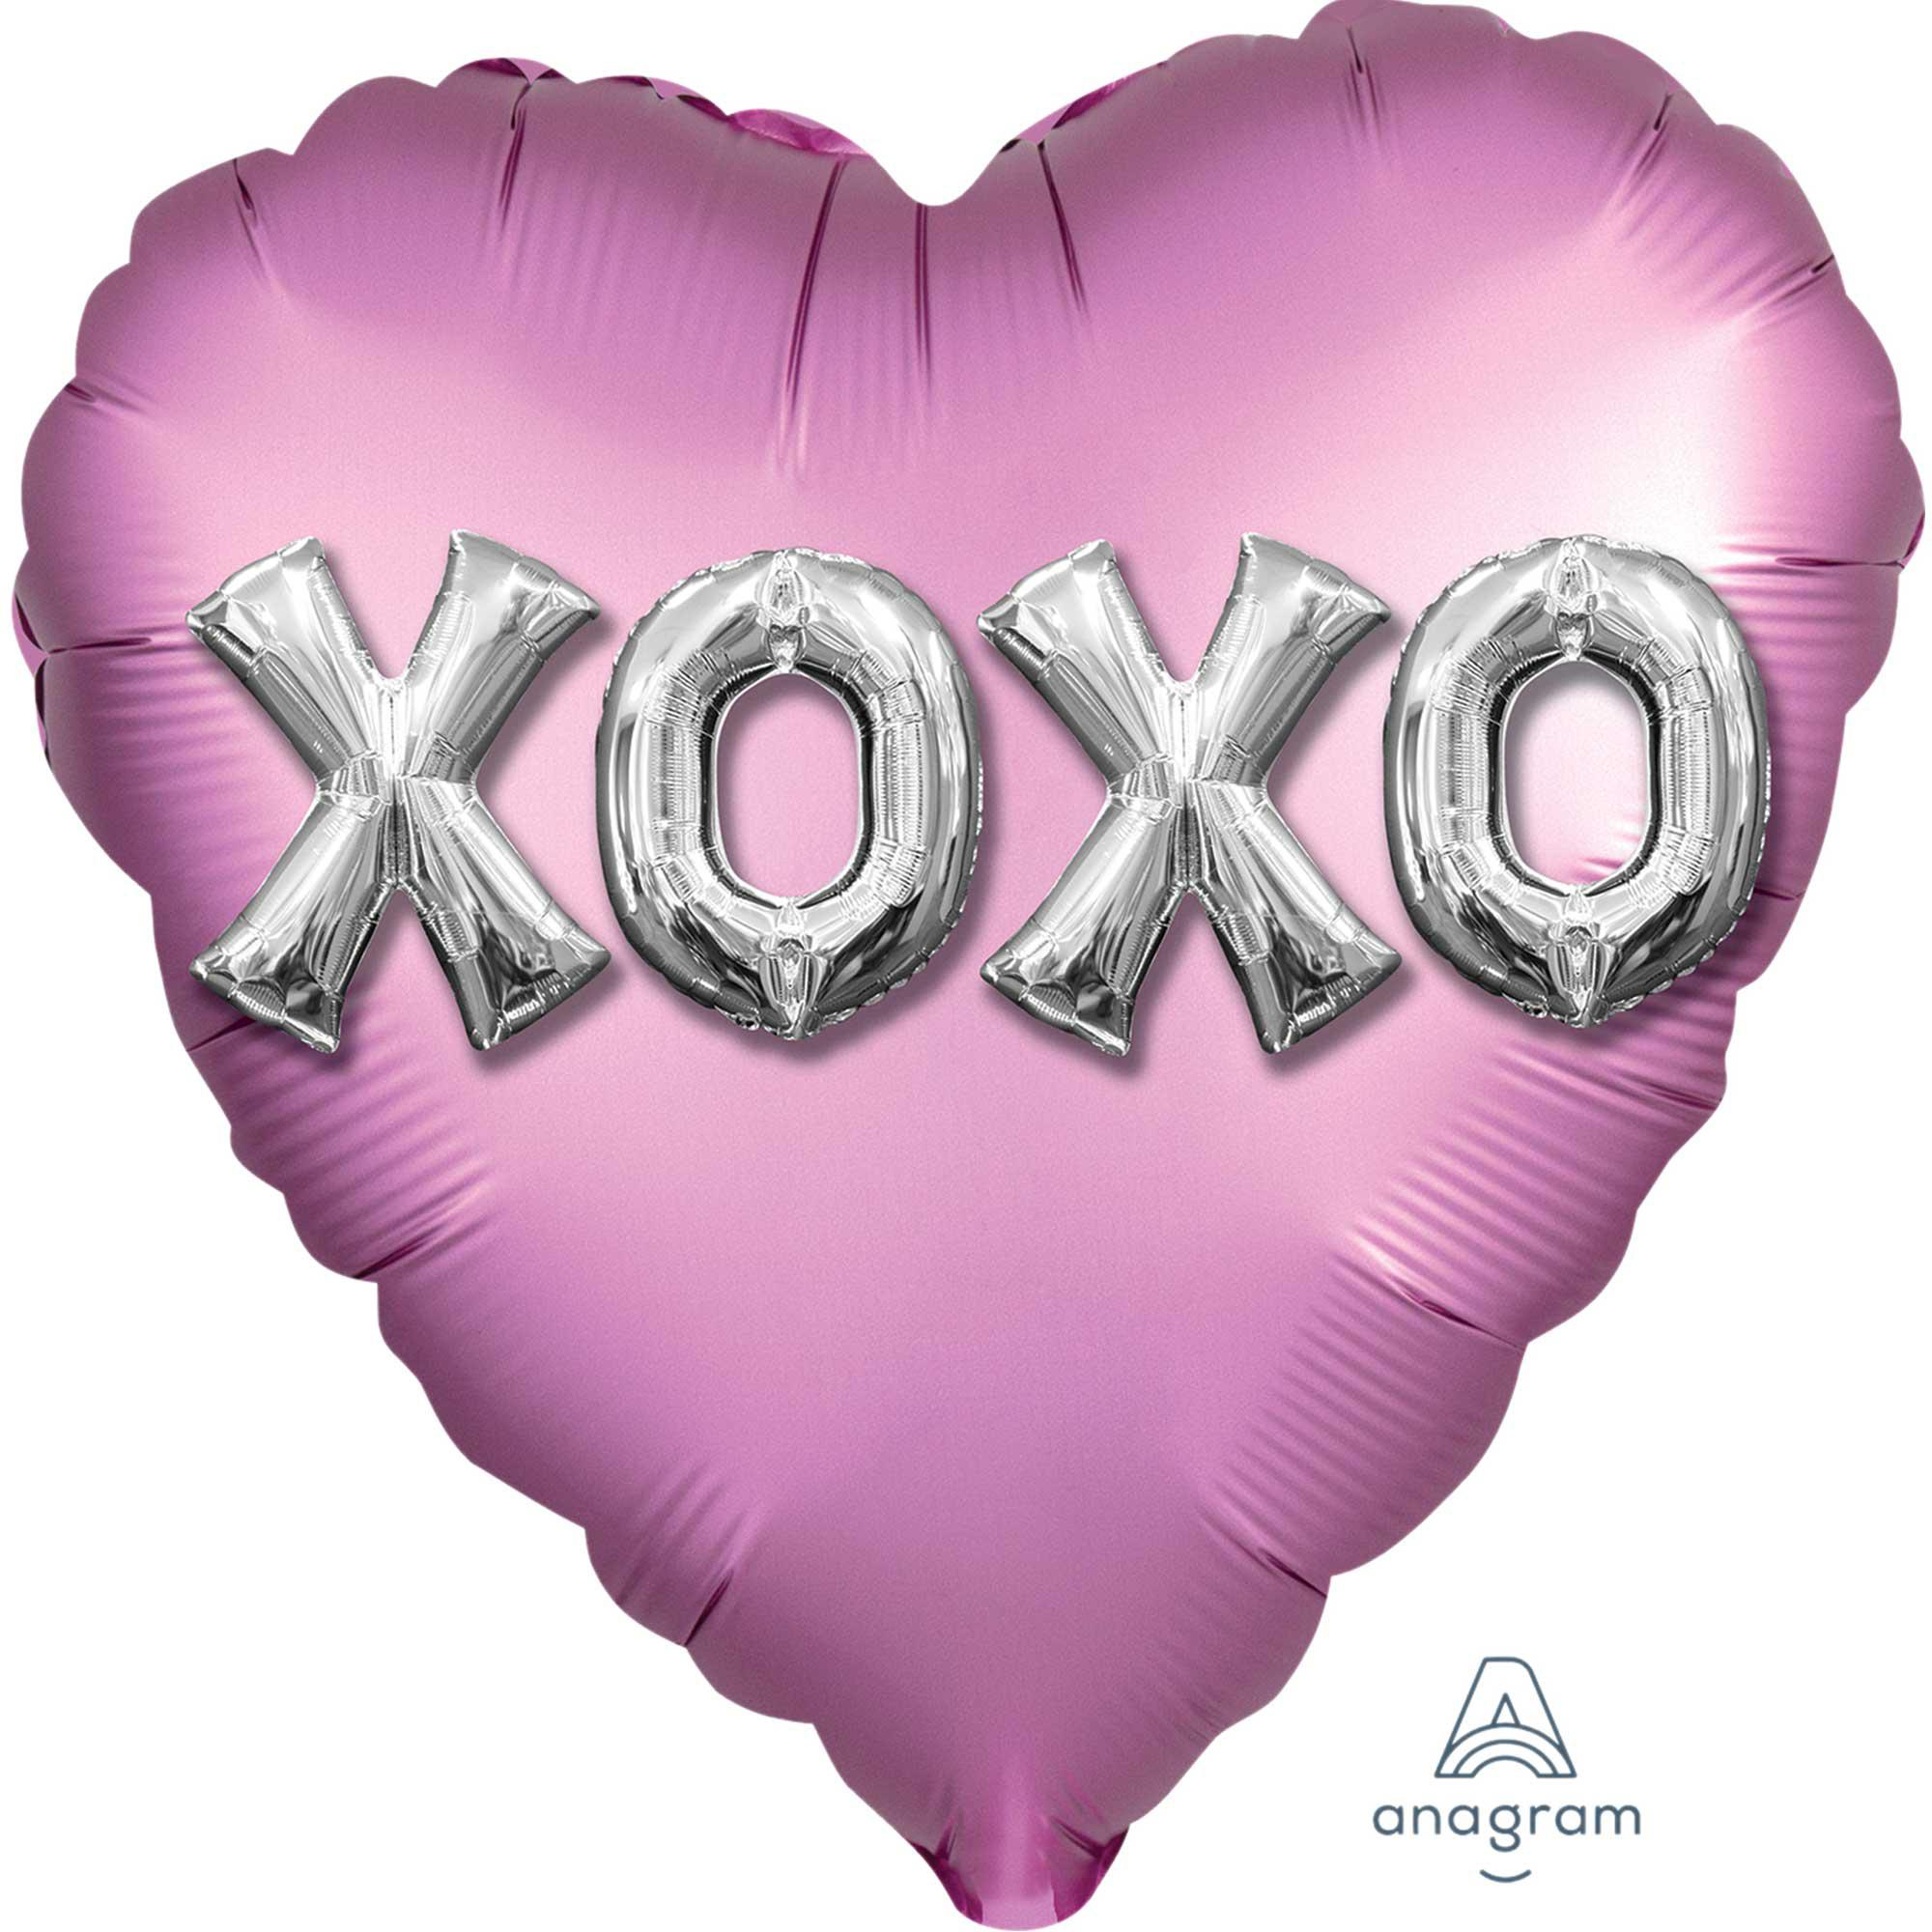 18:Satin XOXO Balloon Letters